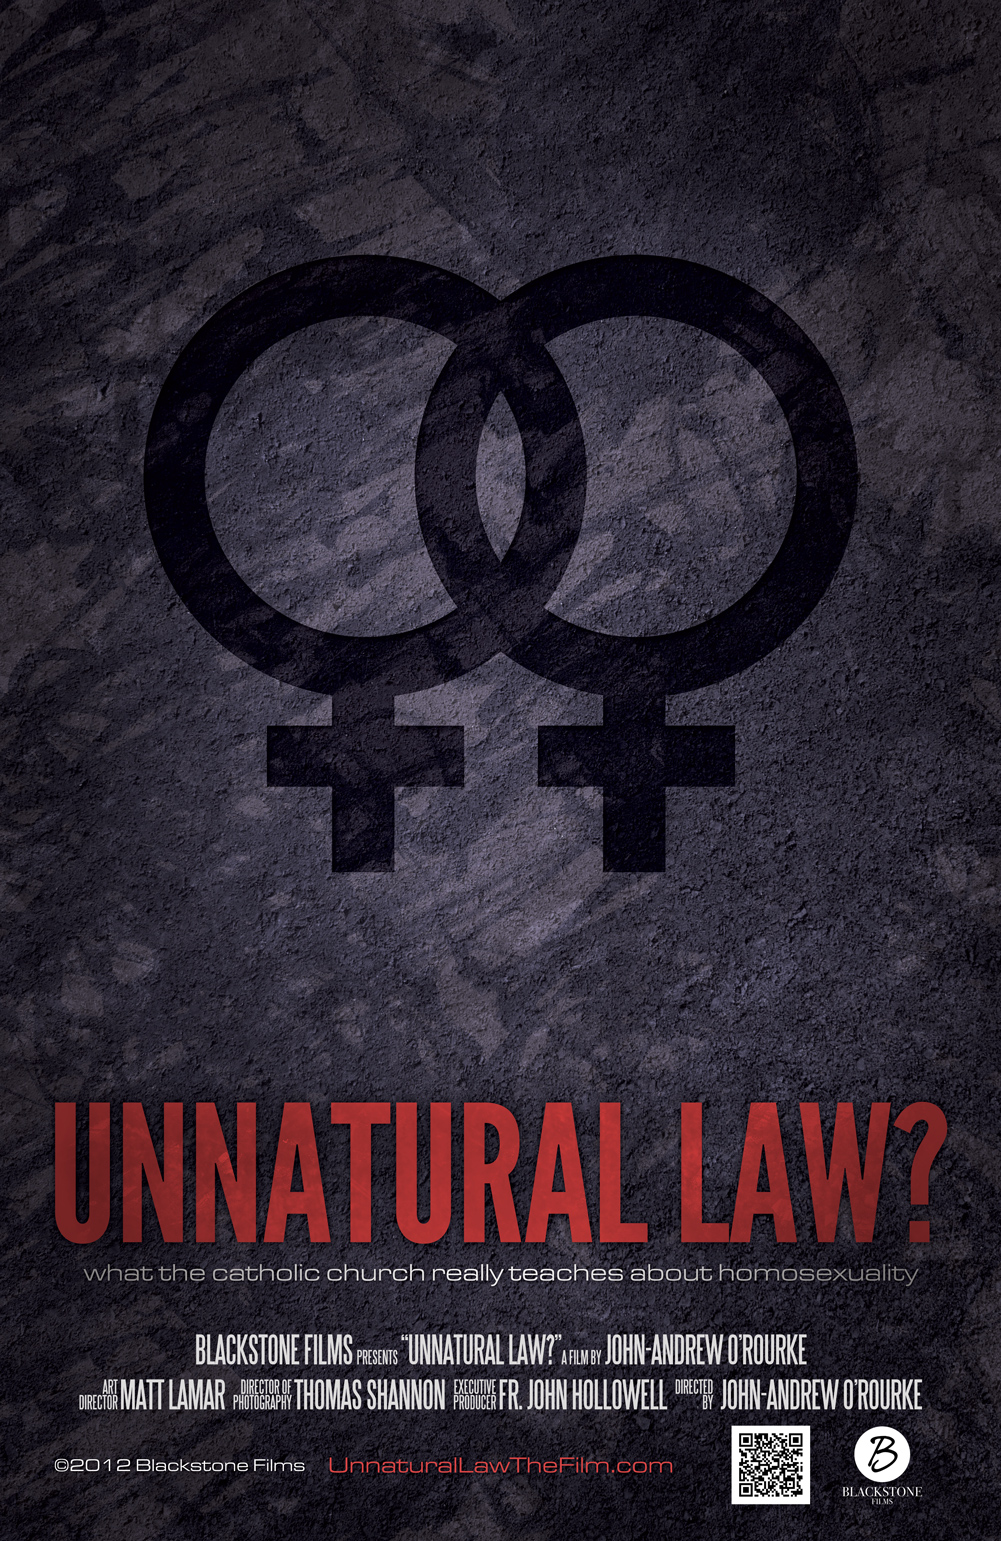 Unnatural Law? What the Catholic Church Really Teaches About Homosexuality